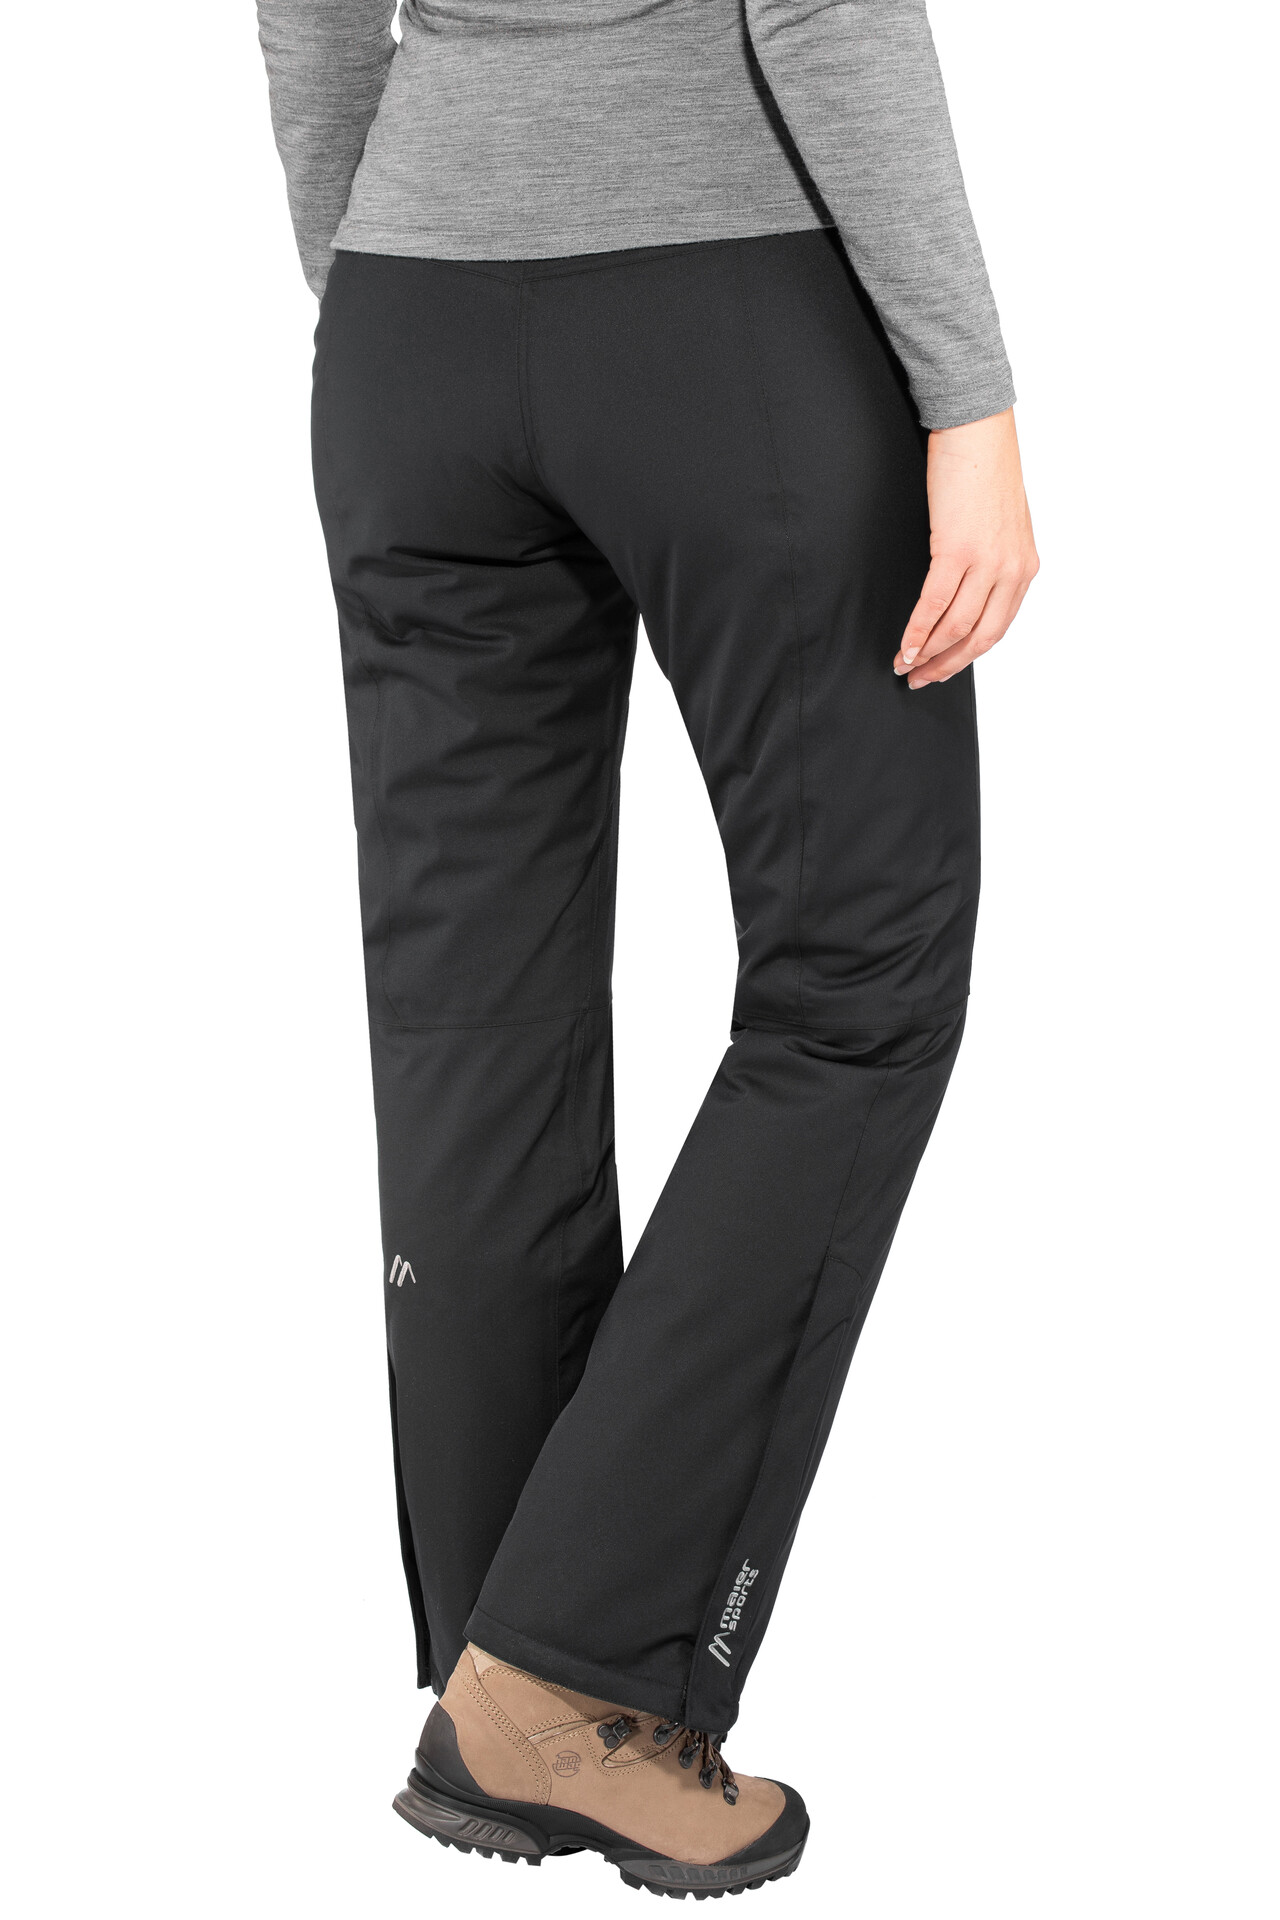 Maier Sports Ronka mTex pantaloni stretch da sci Donna, black su Addnature YfxmR